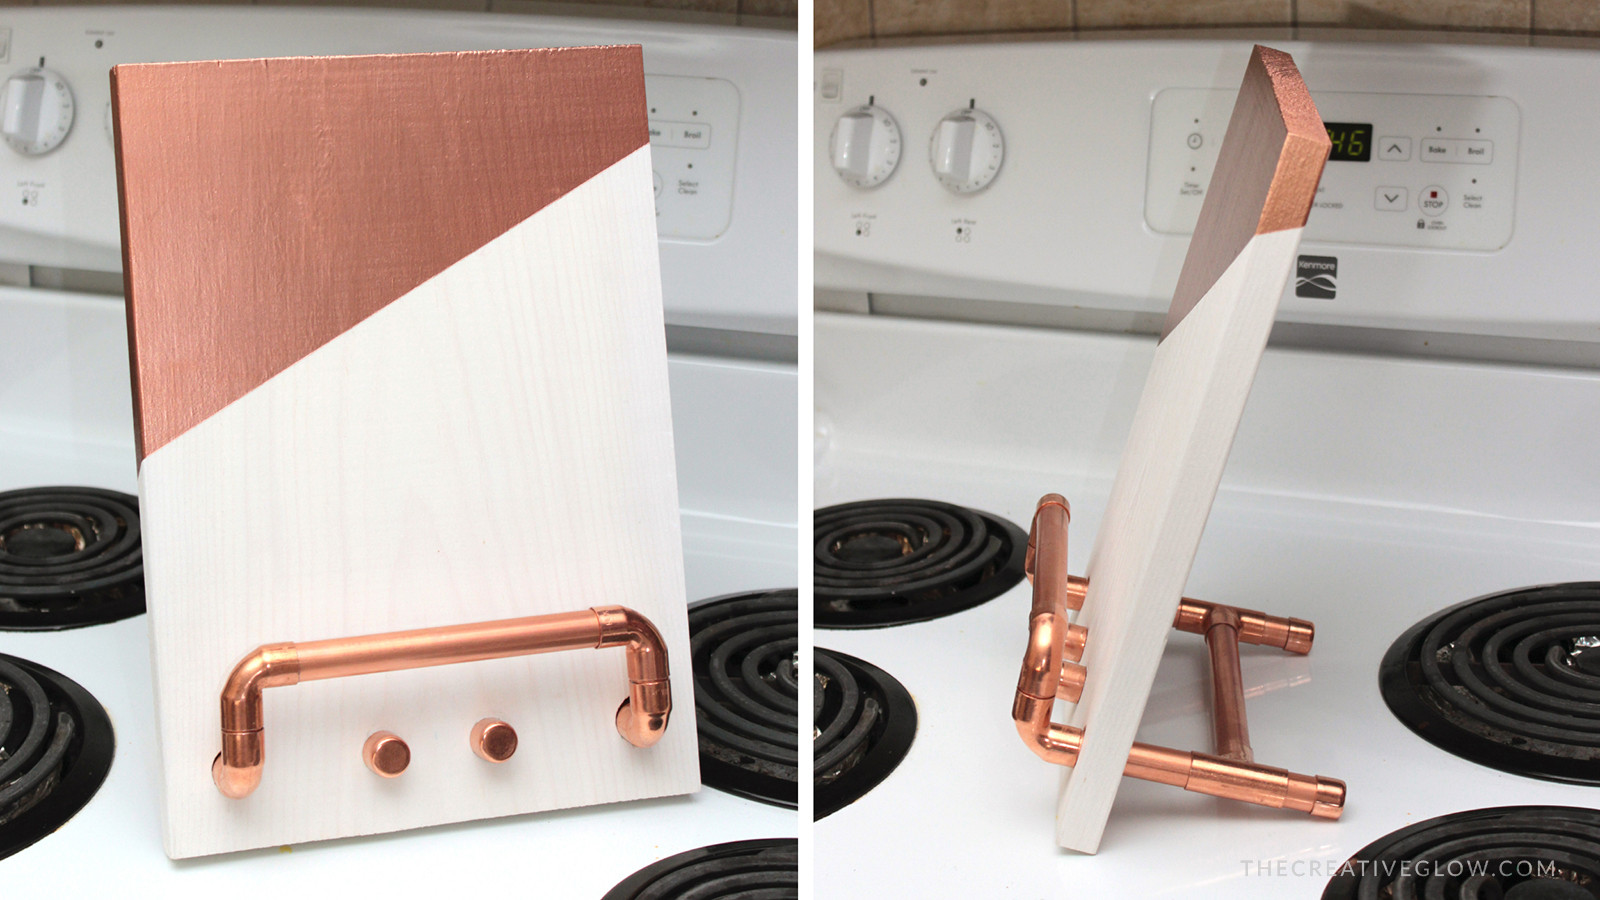 Best ideas about DIY Cookbook Stand . Save or Pin DIY Cookbook & Tablet Stand Copper & Wood Now.